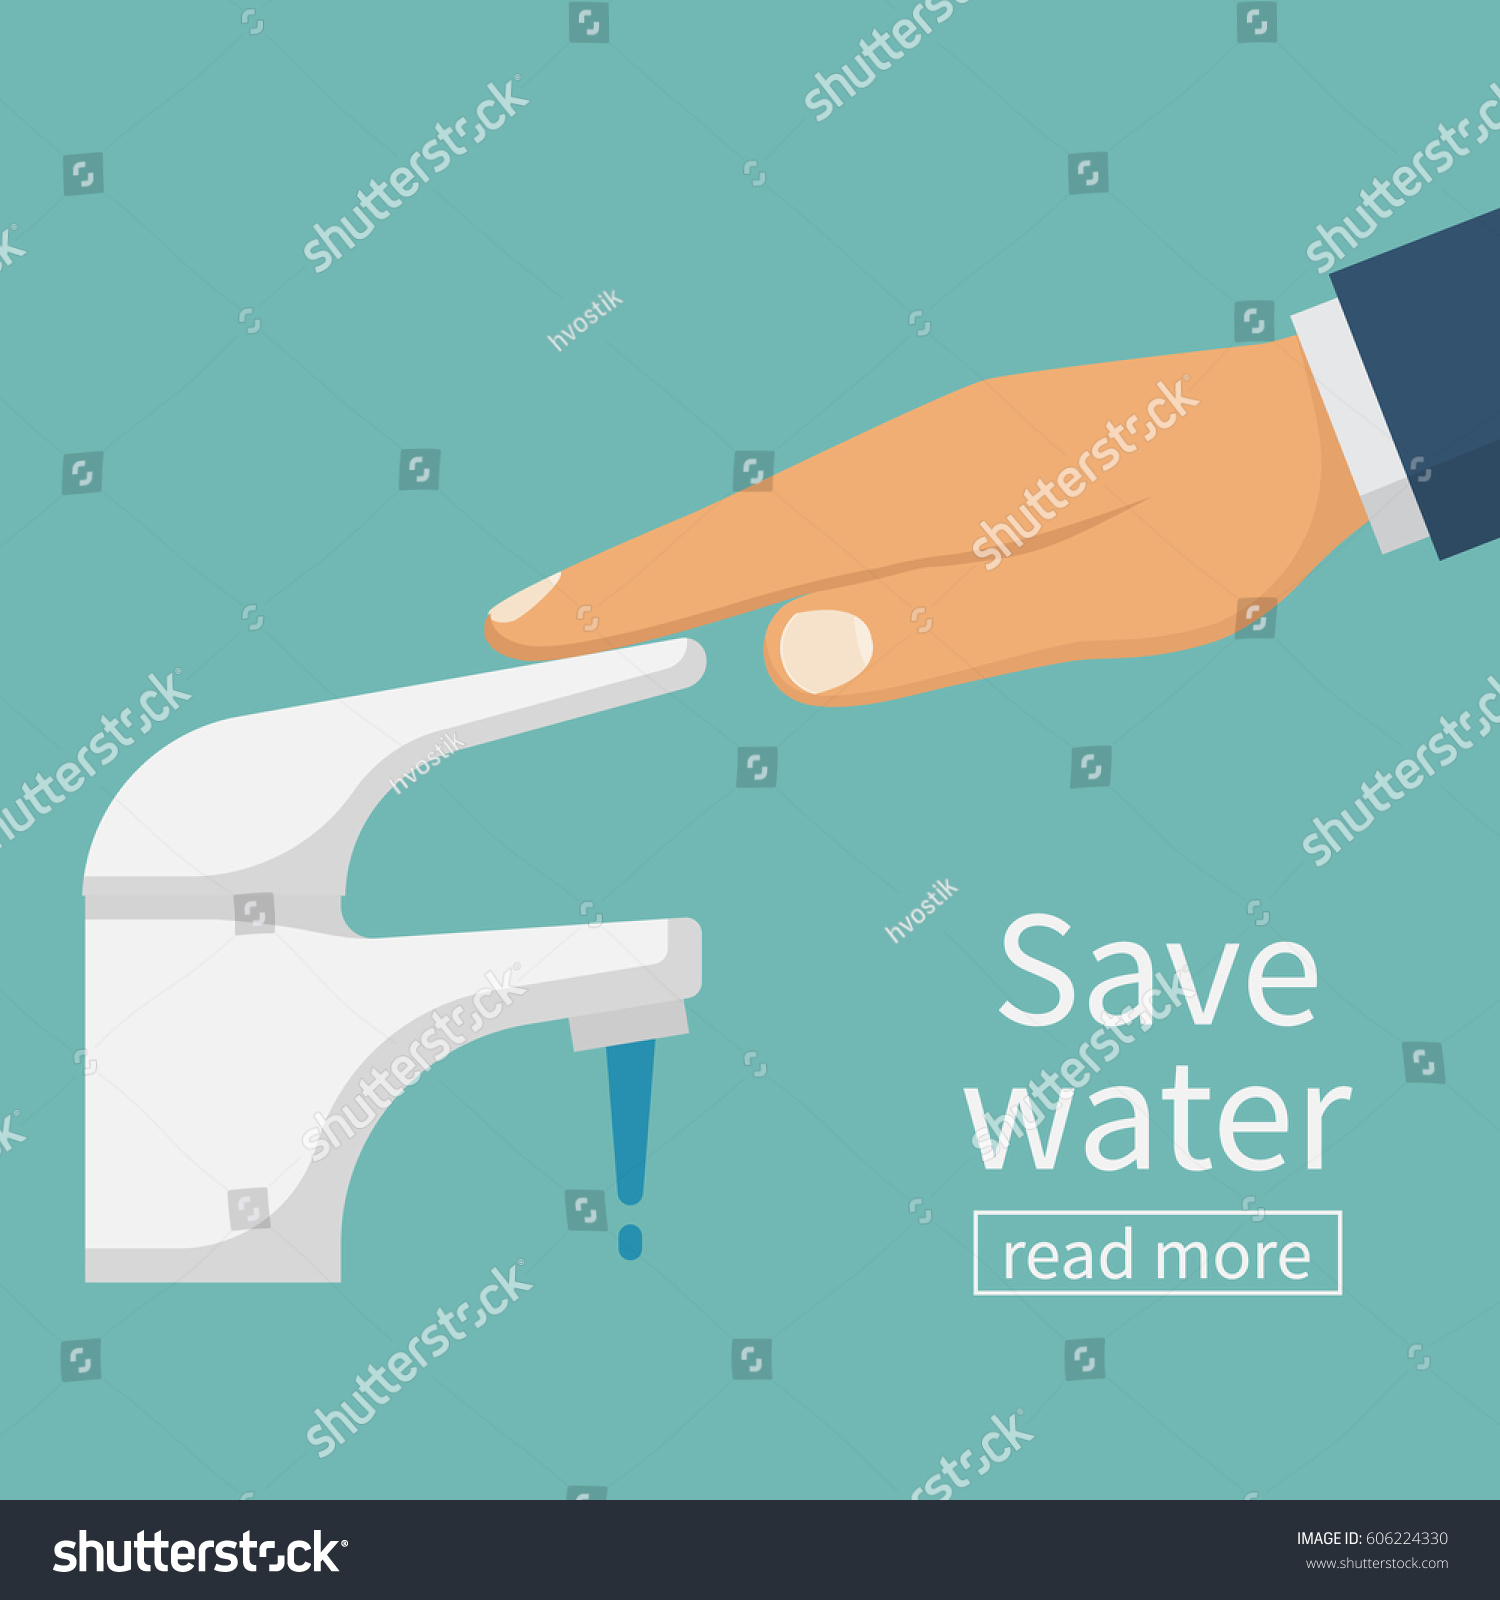 Save Water Concept Man Closes Hand Stock Vector 606224330 - Shutterstock